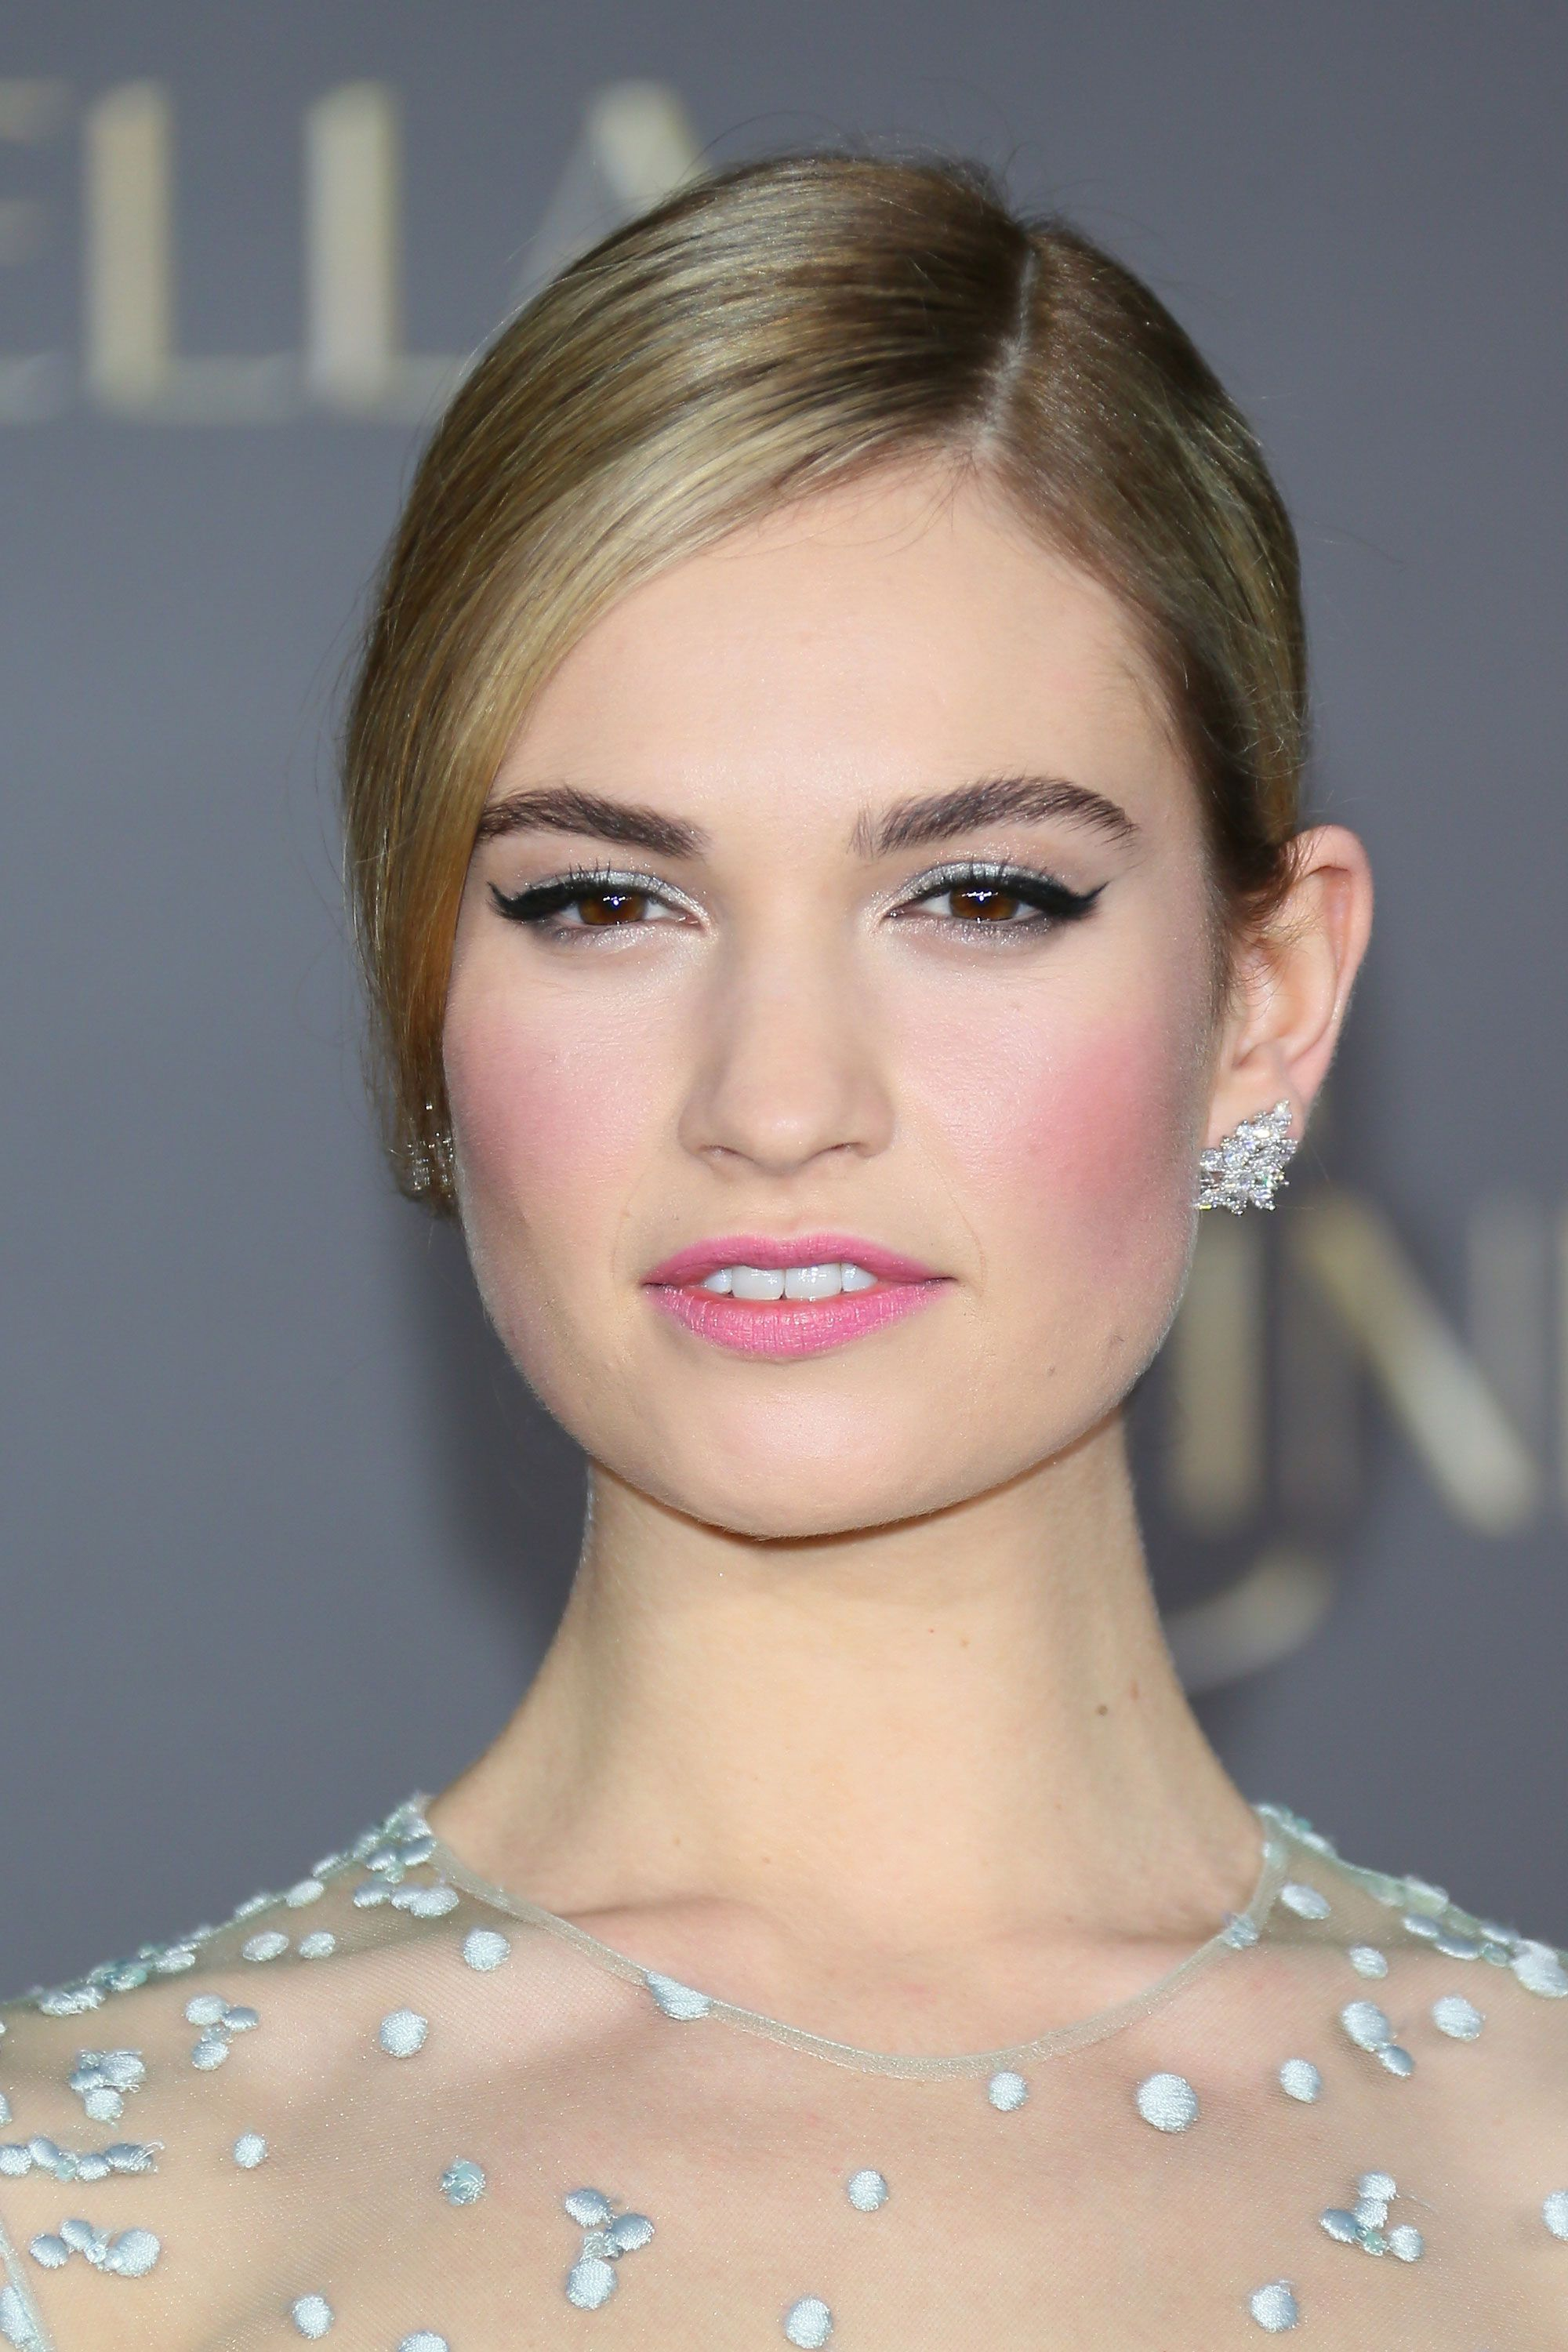 The <em>Cinderella</em> star looks like a true princess with her polished bun, rosy cheeks, and pink pout.